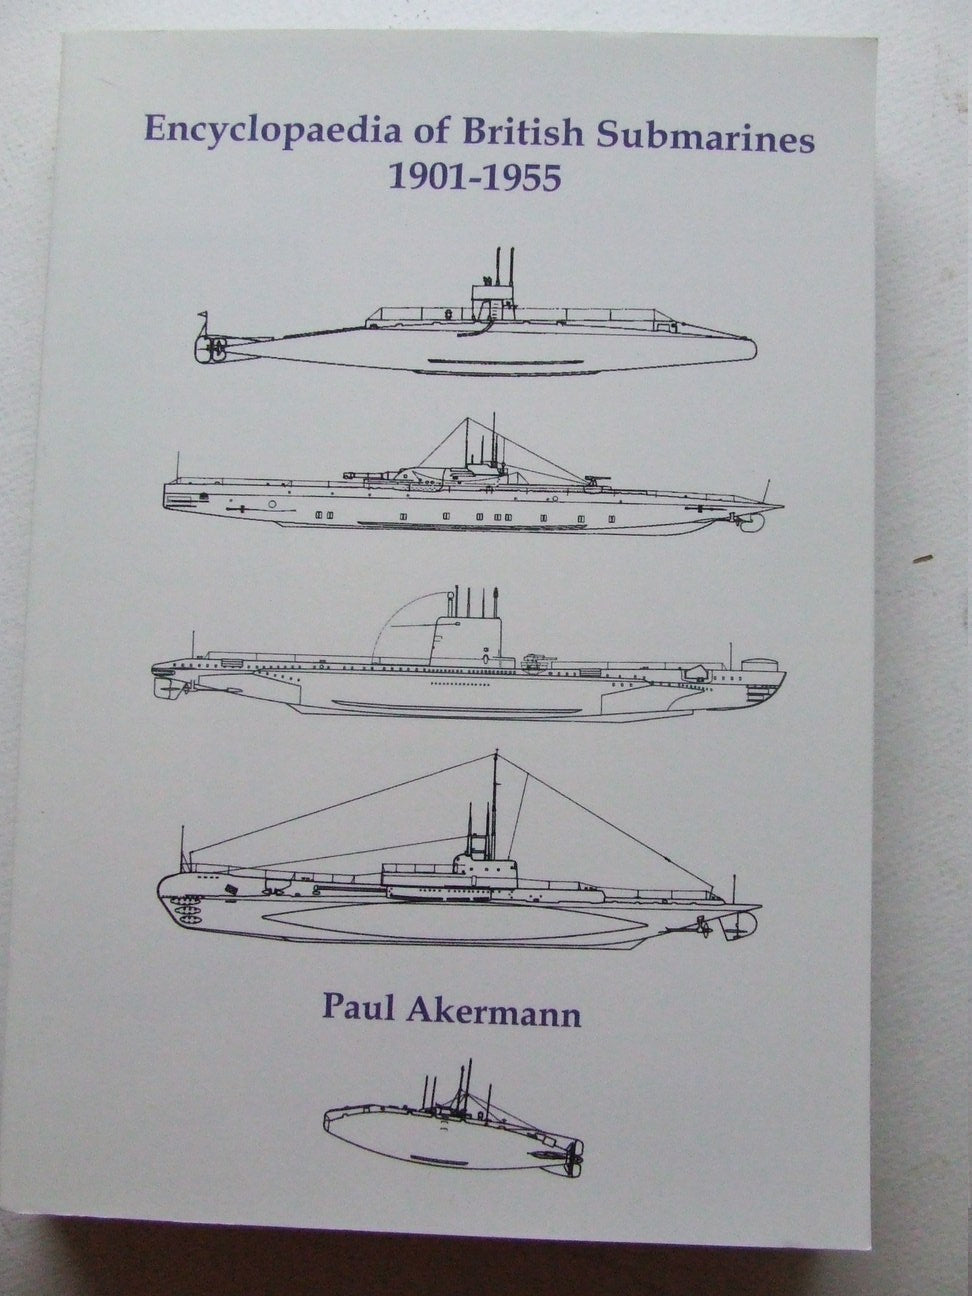 Encyclopaedia of British Submarines 1901-1955